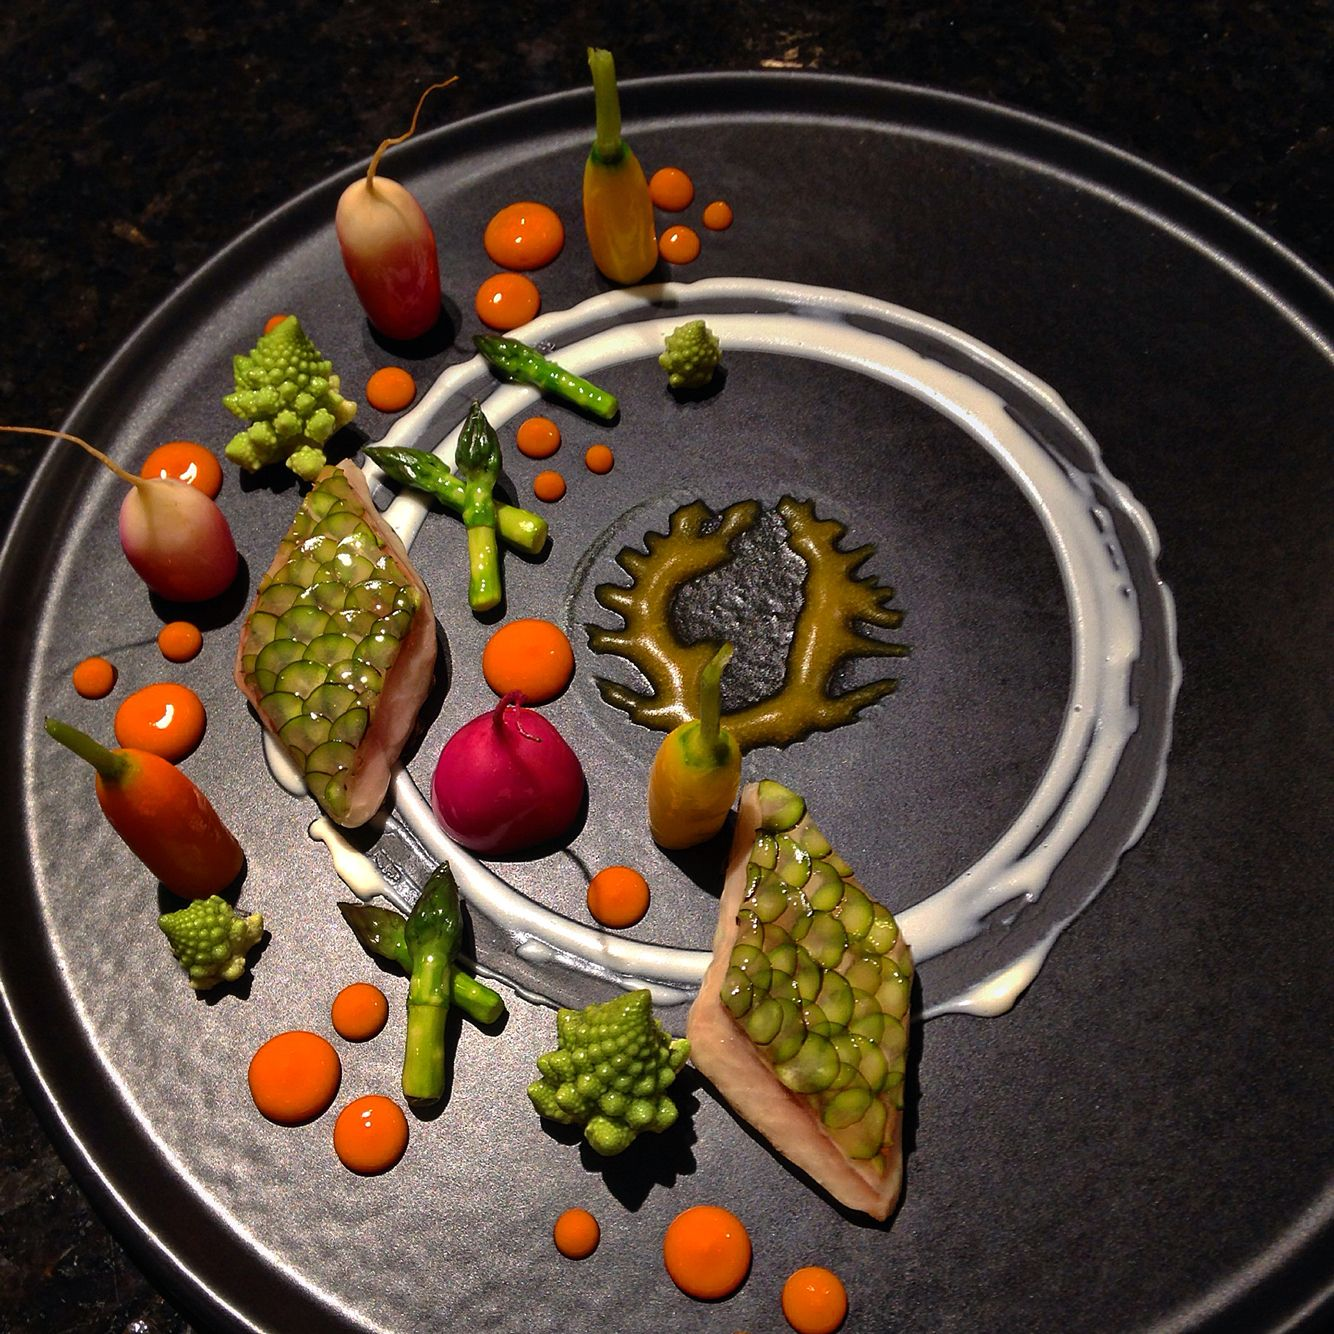 Ocean perch, carrot gel, fennel purée, and assorted vegetables.